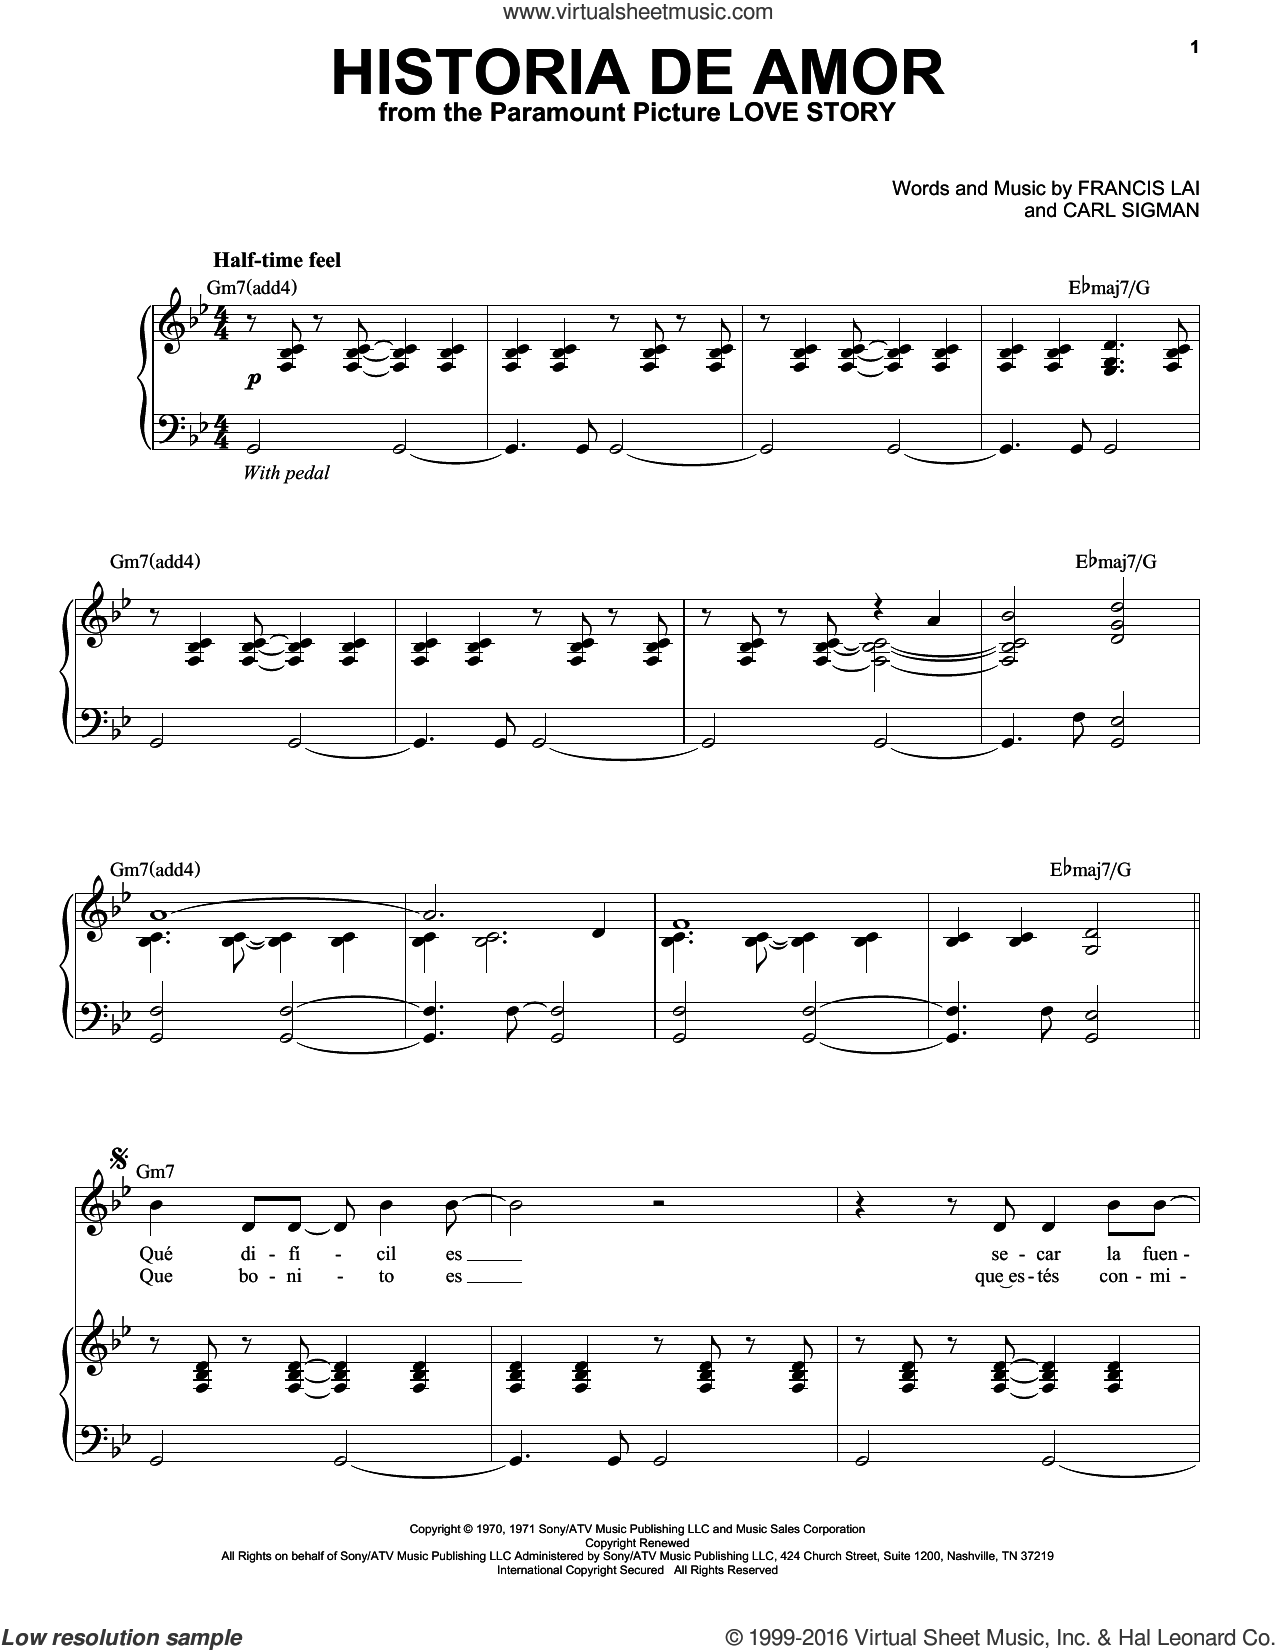 Historia De Amor sheet music for voice and piano by Carl Sigman, Andrea Bocelli and Francis Lai. Score Image Preview.